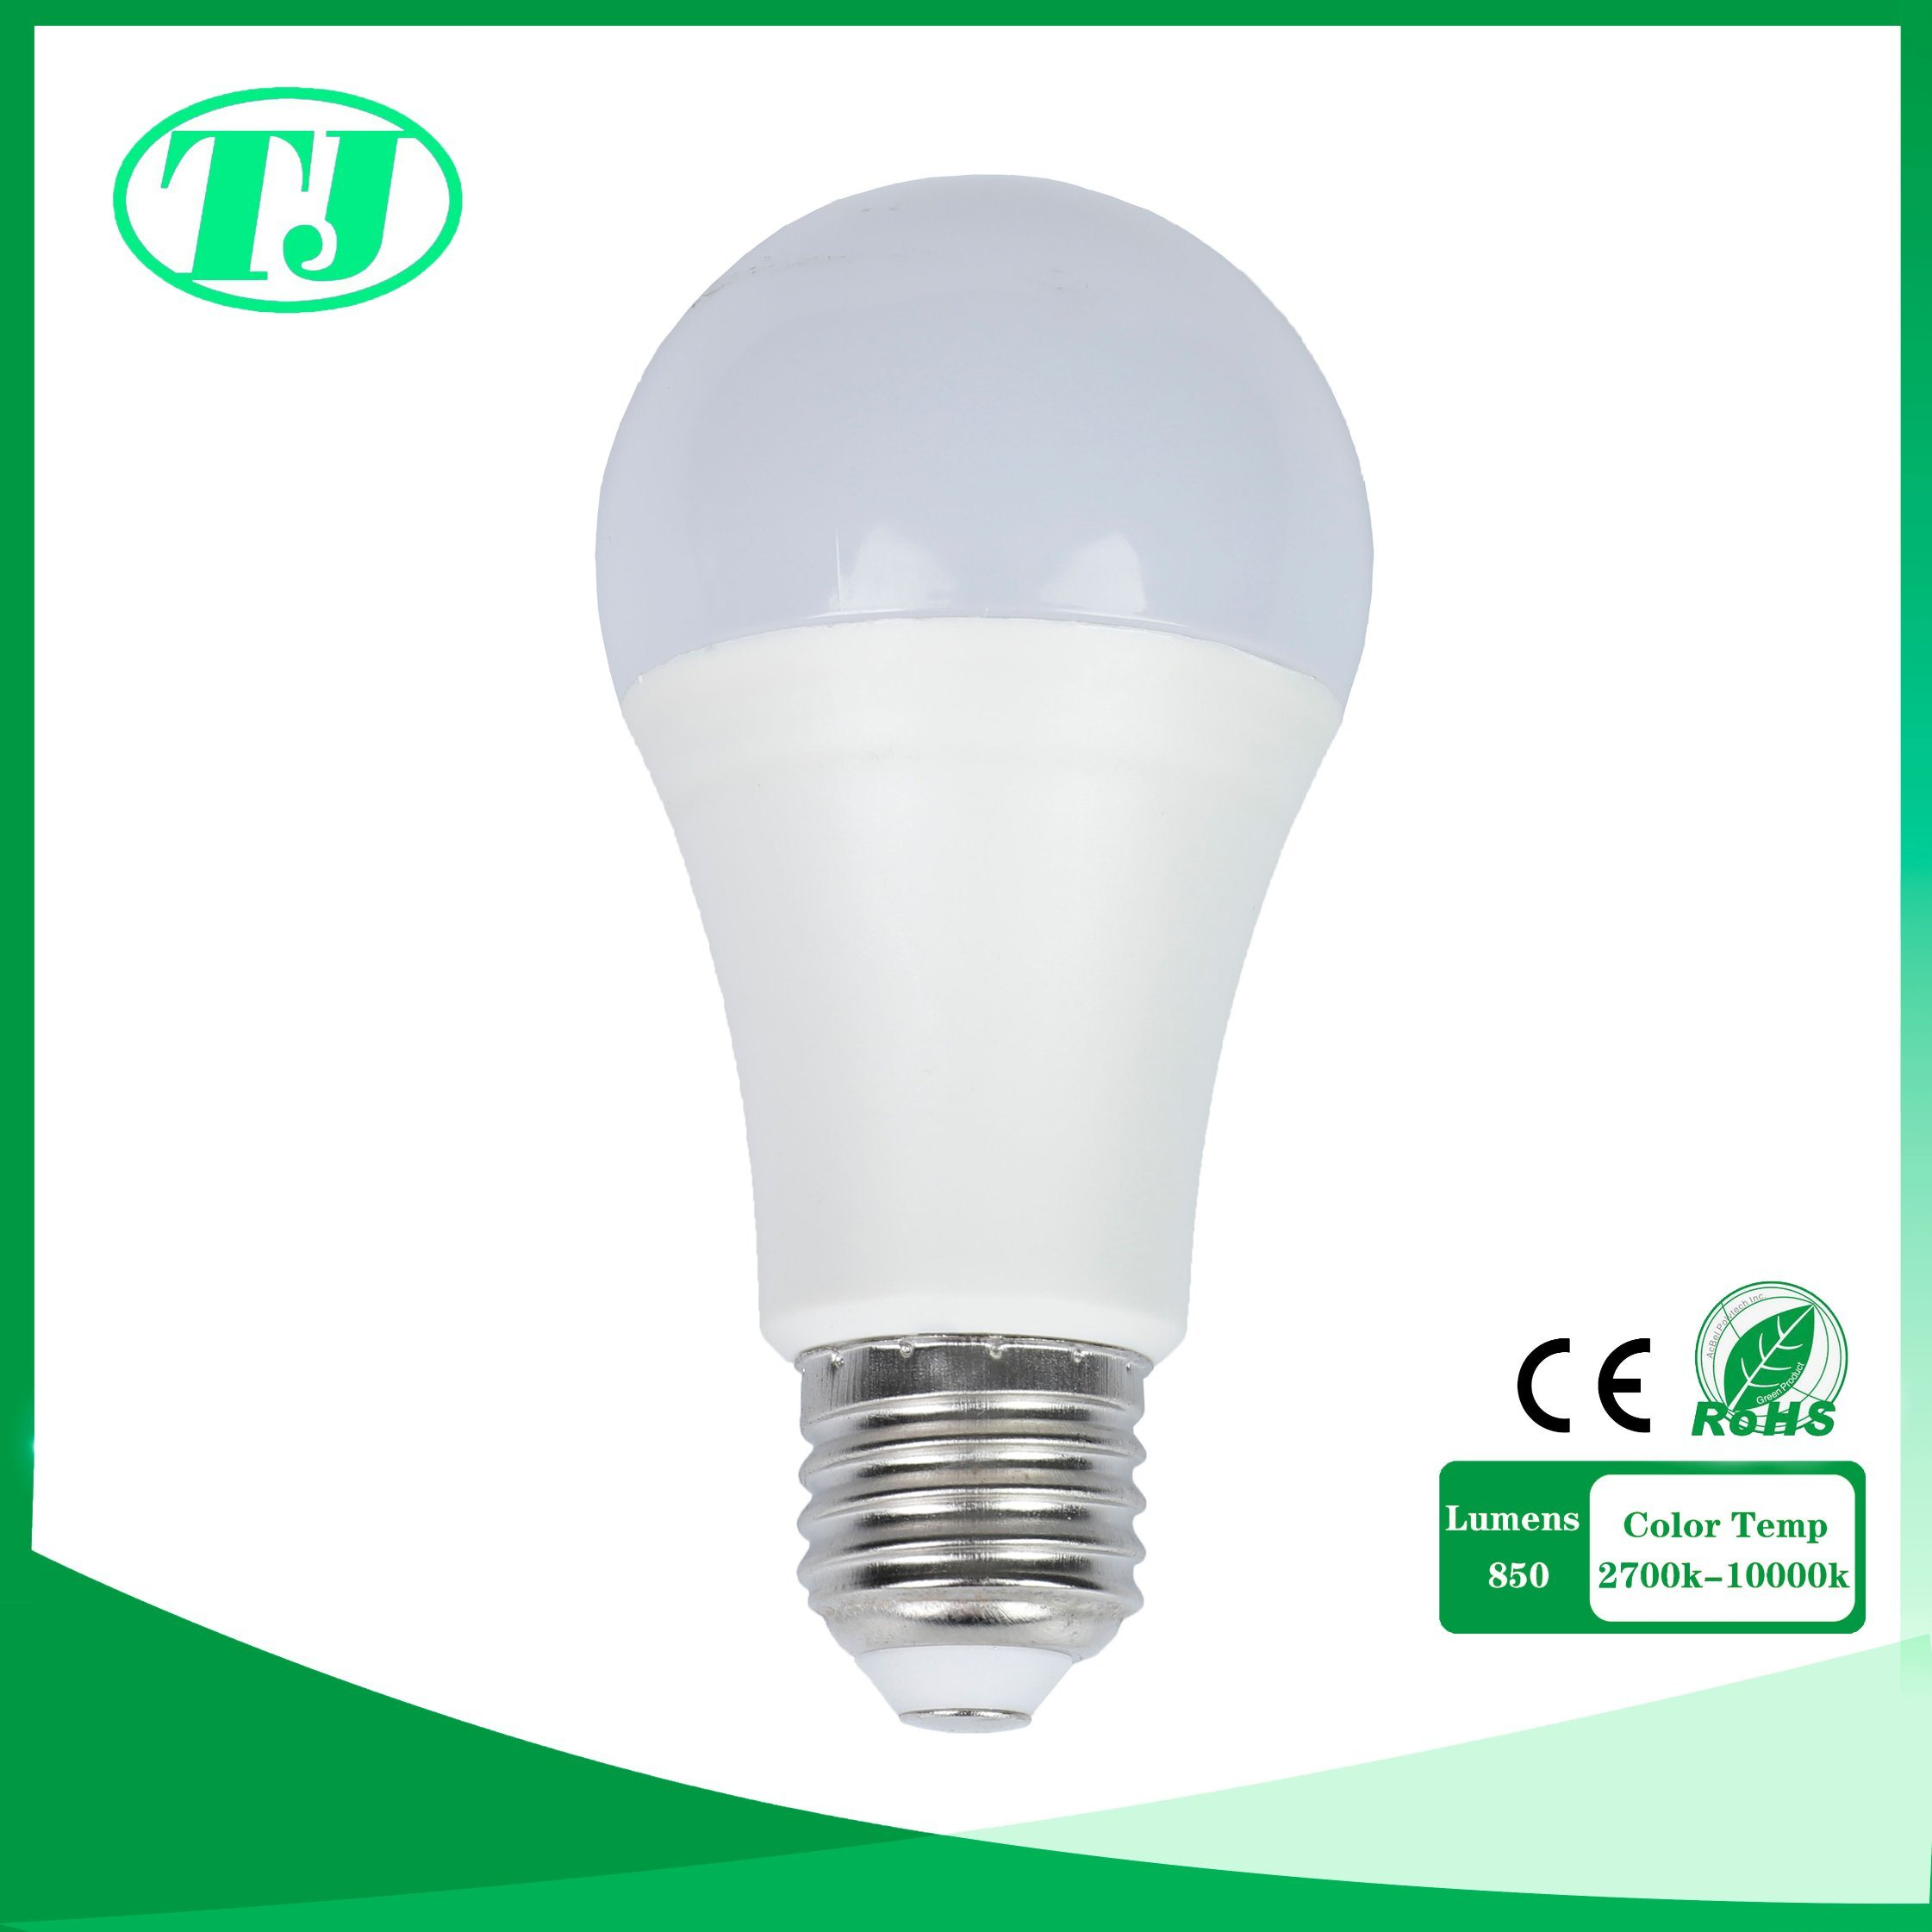 60 E14 Lumen Hot Item 9w High Lumen Ic Driver Led Bulb Light 996 9w A60